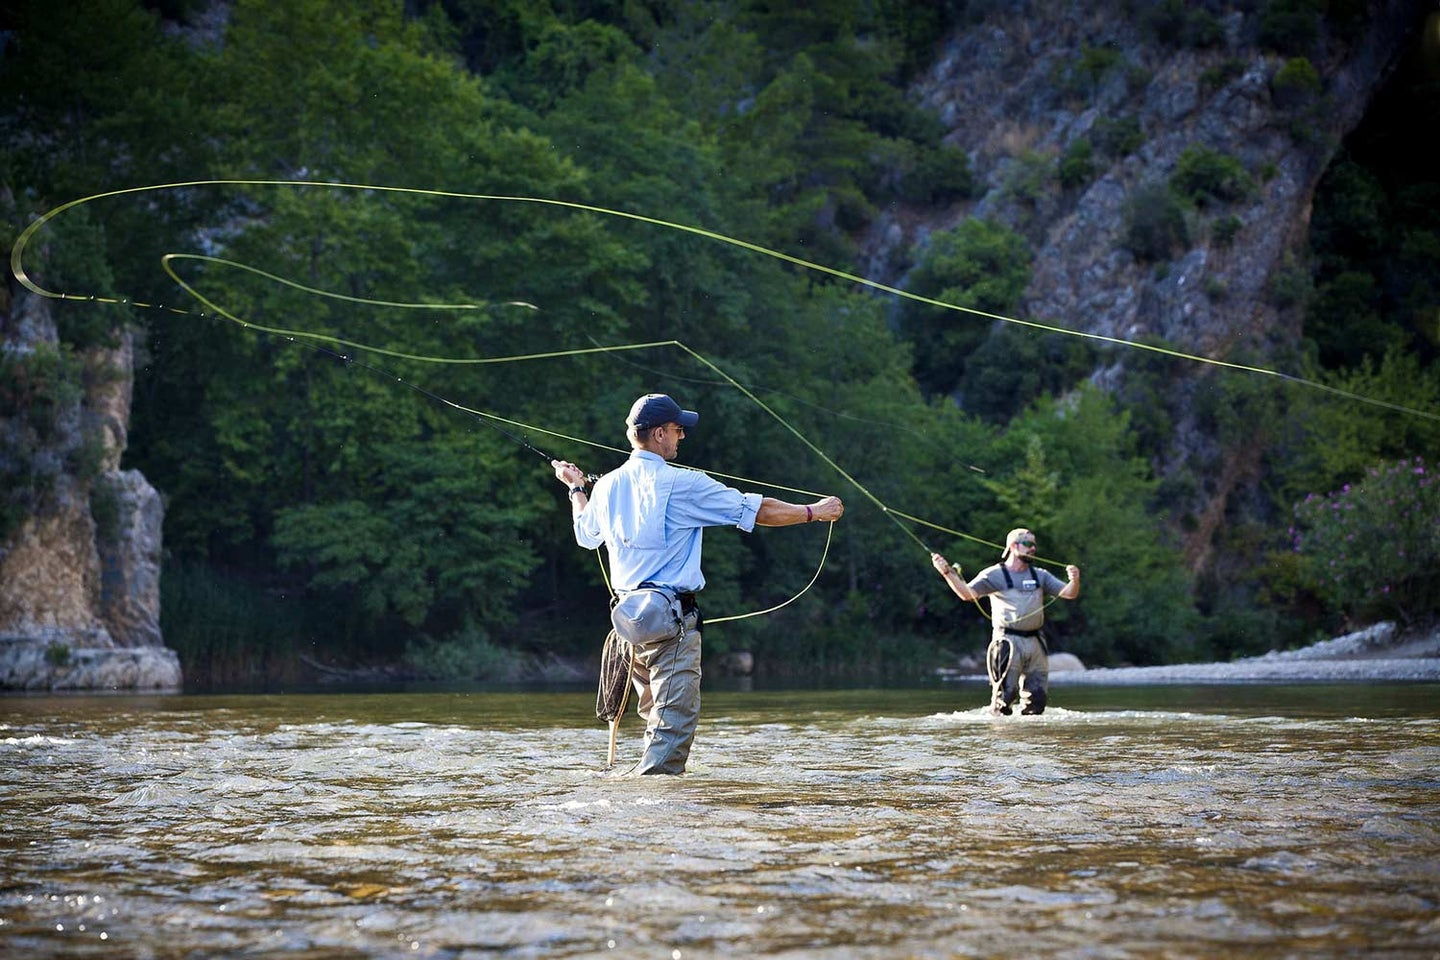 Two anglers cast their reels into a flowing stream.